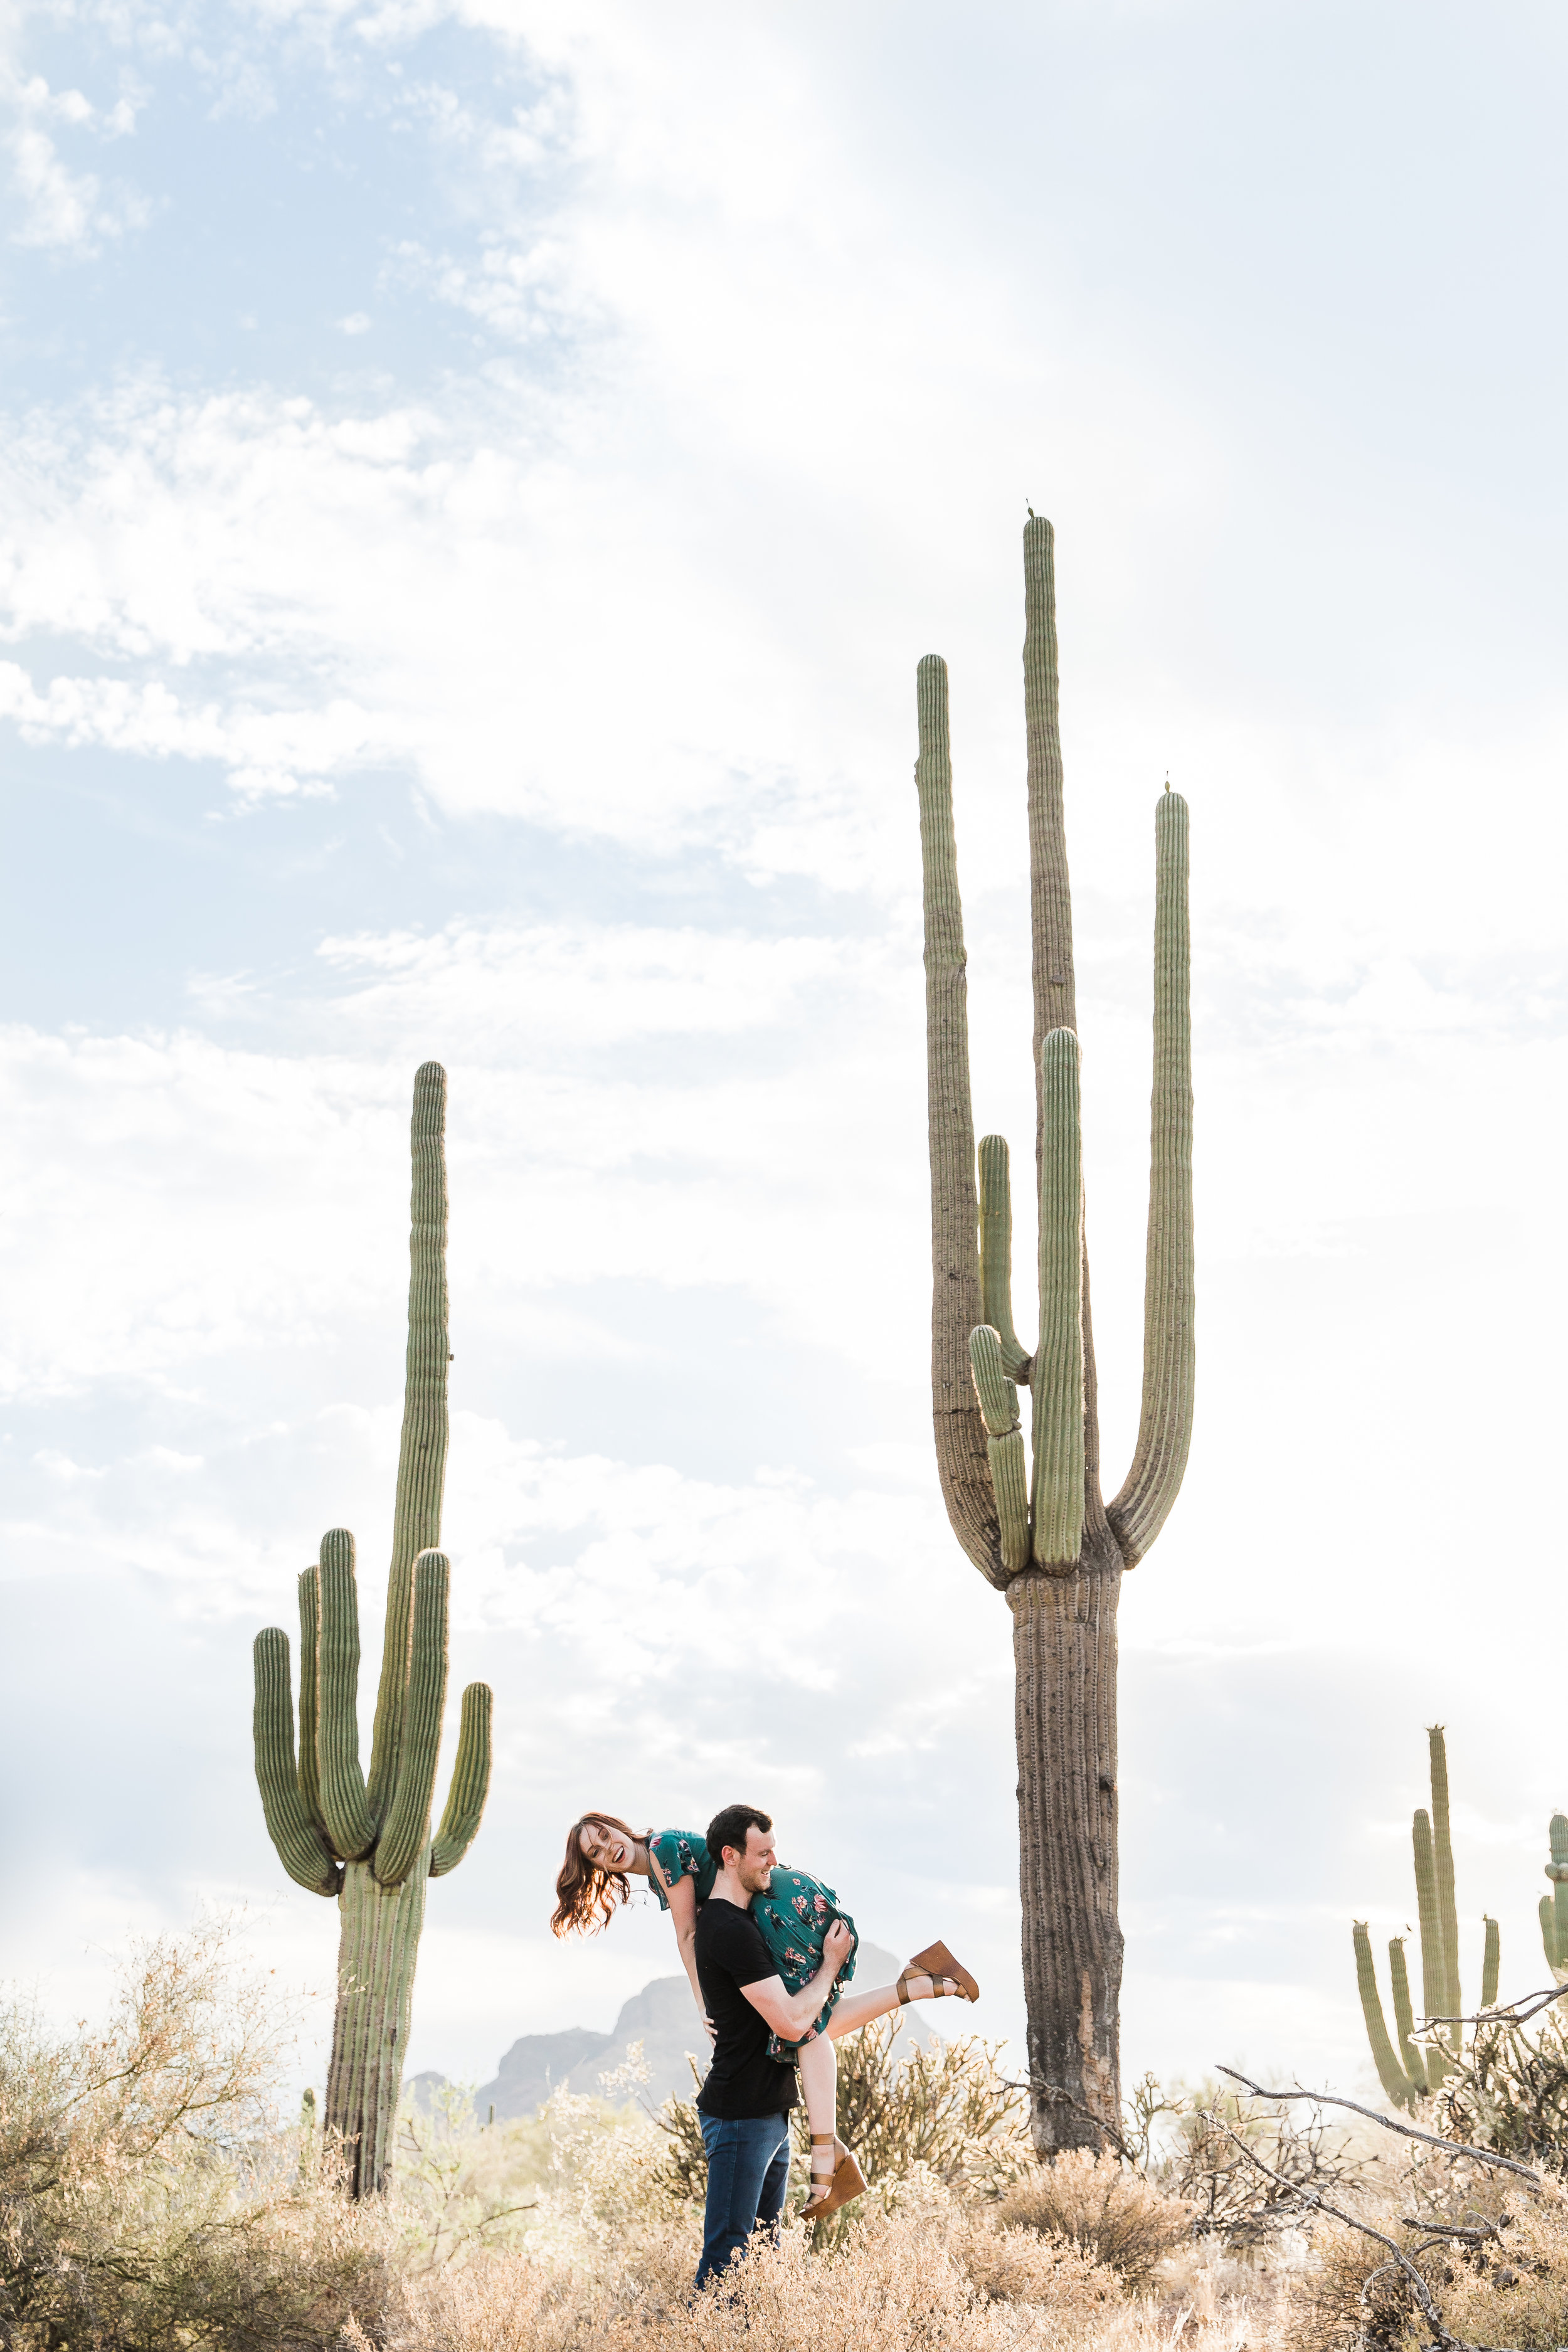 Lindsay-Borg-Photography-Arizona-12.jpg